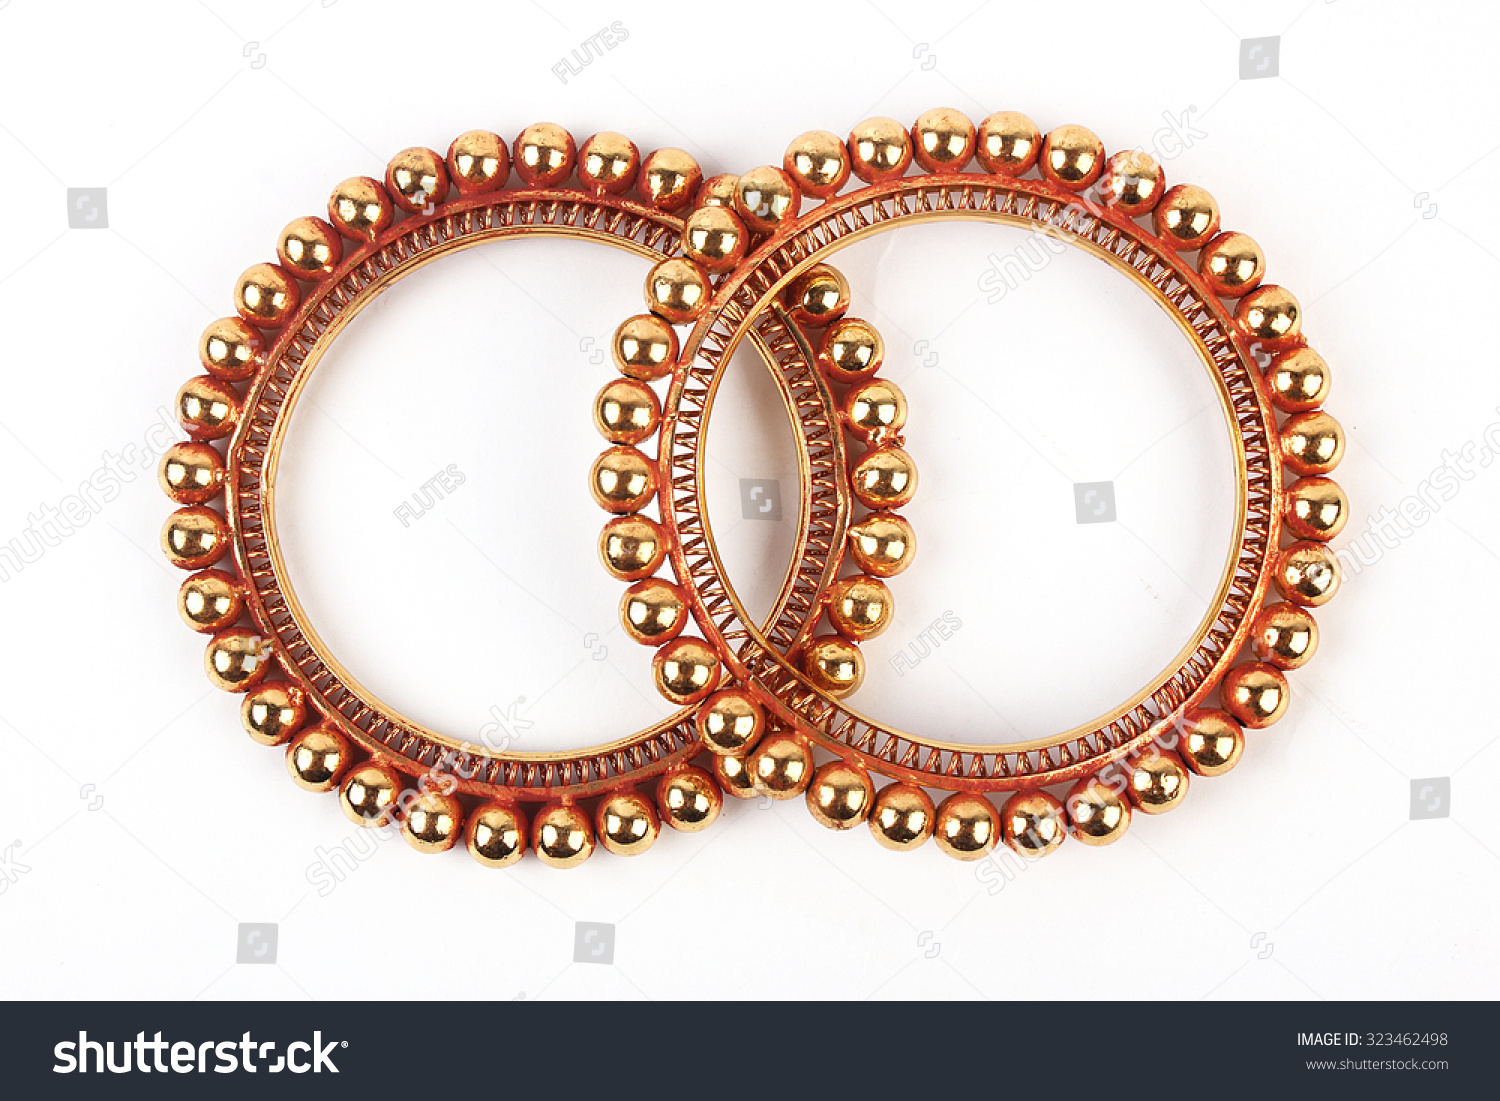 Traditional Indian Gold Bangles Stock Photo 323462498 - Shutterstock